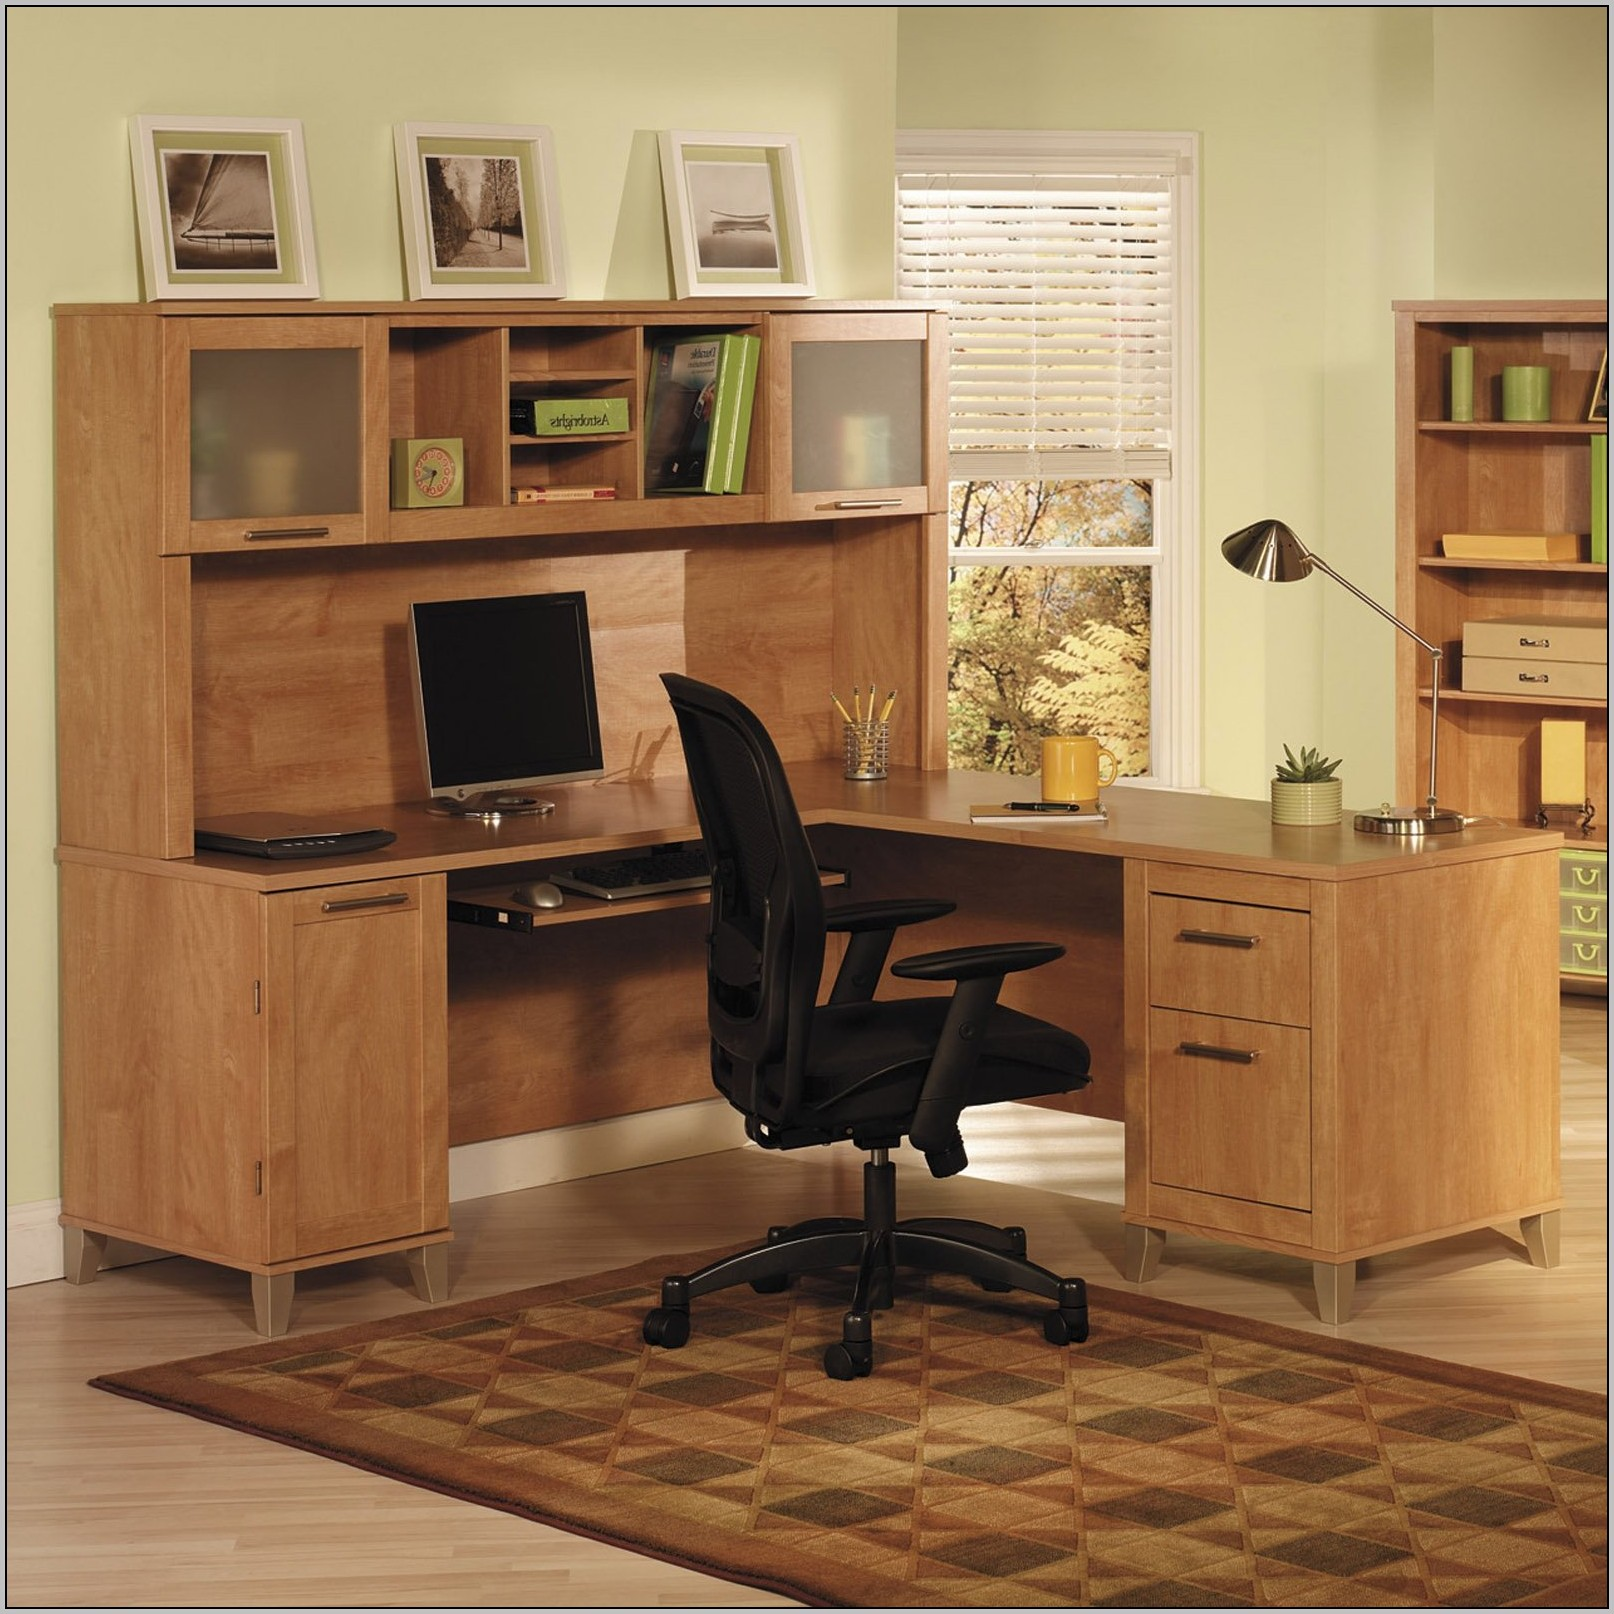 Corner unit desks for home office download page home for Home office corner desk ideas